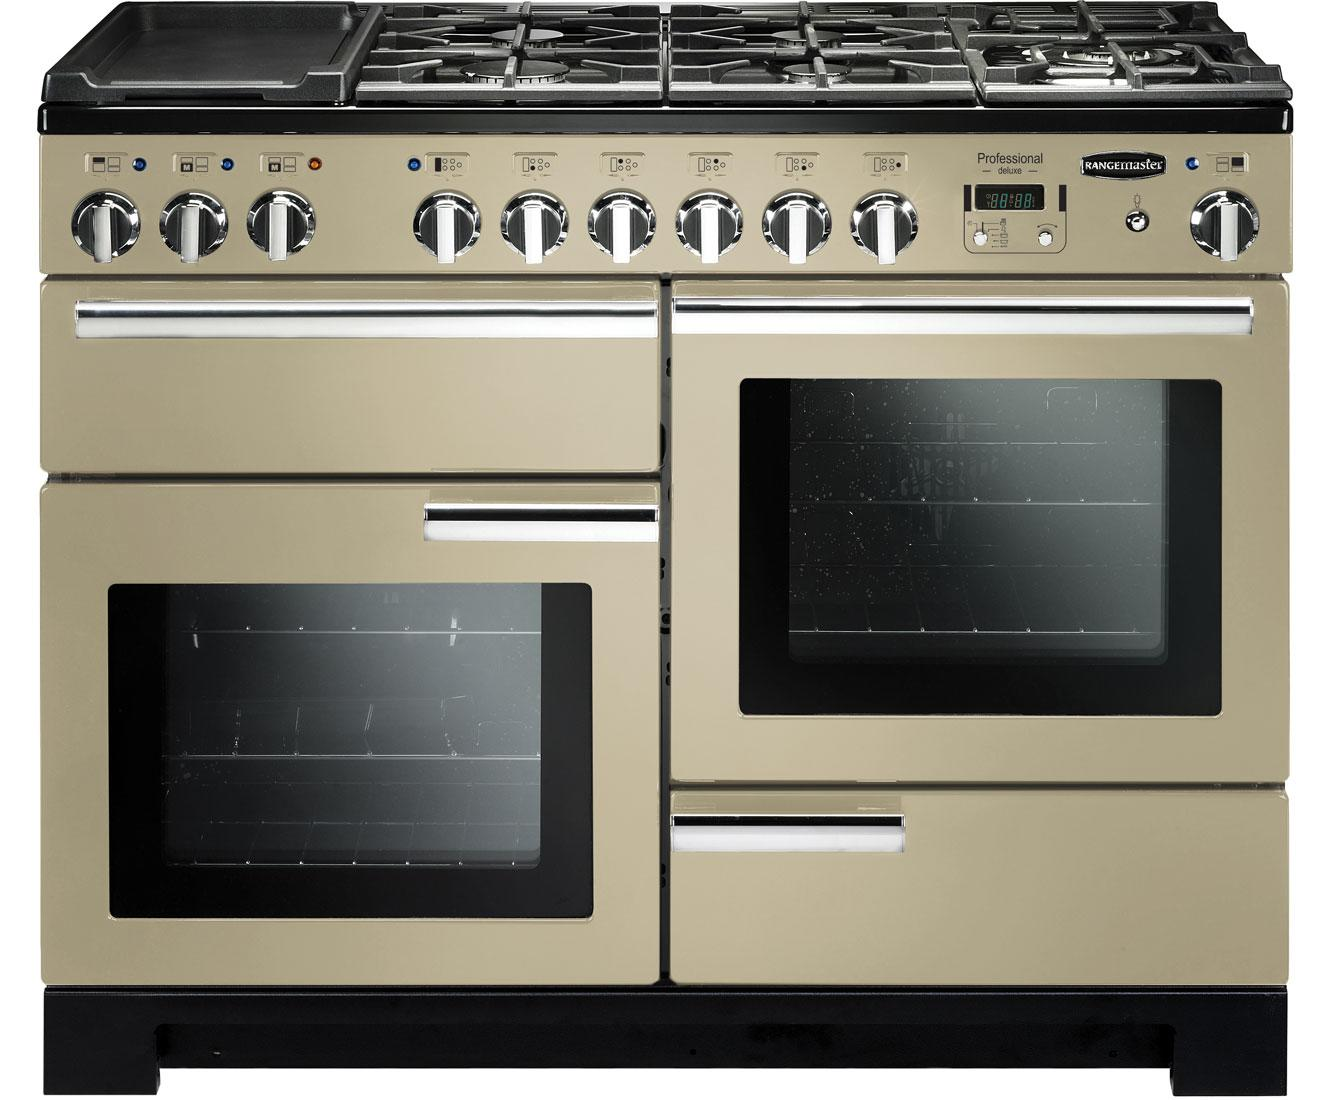 Rangemaster Dual Fuel Range Cooker in Cream